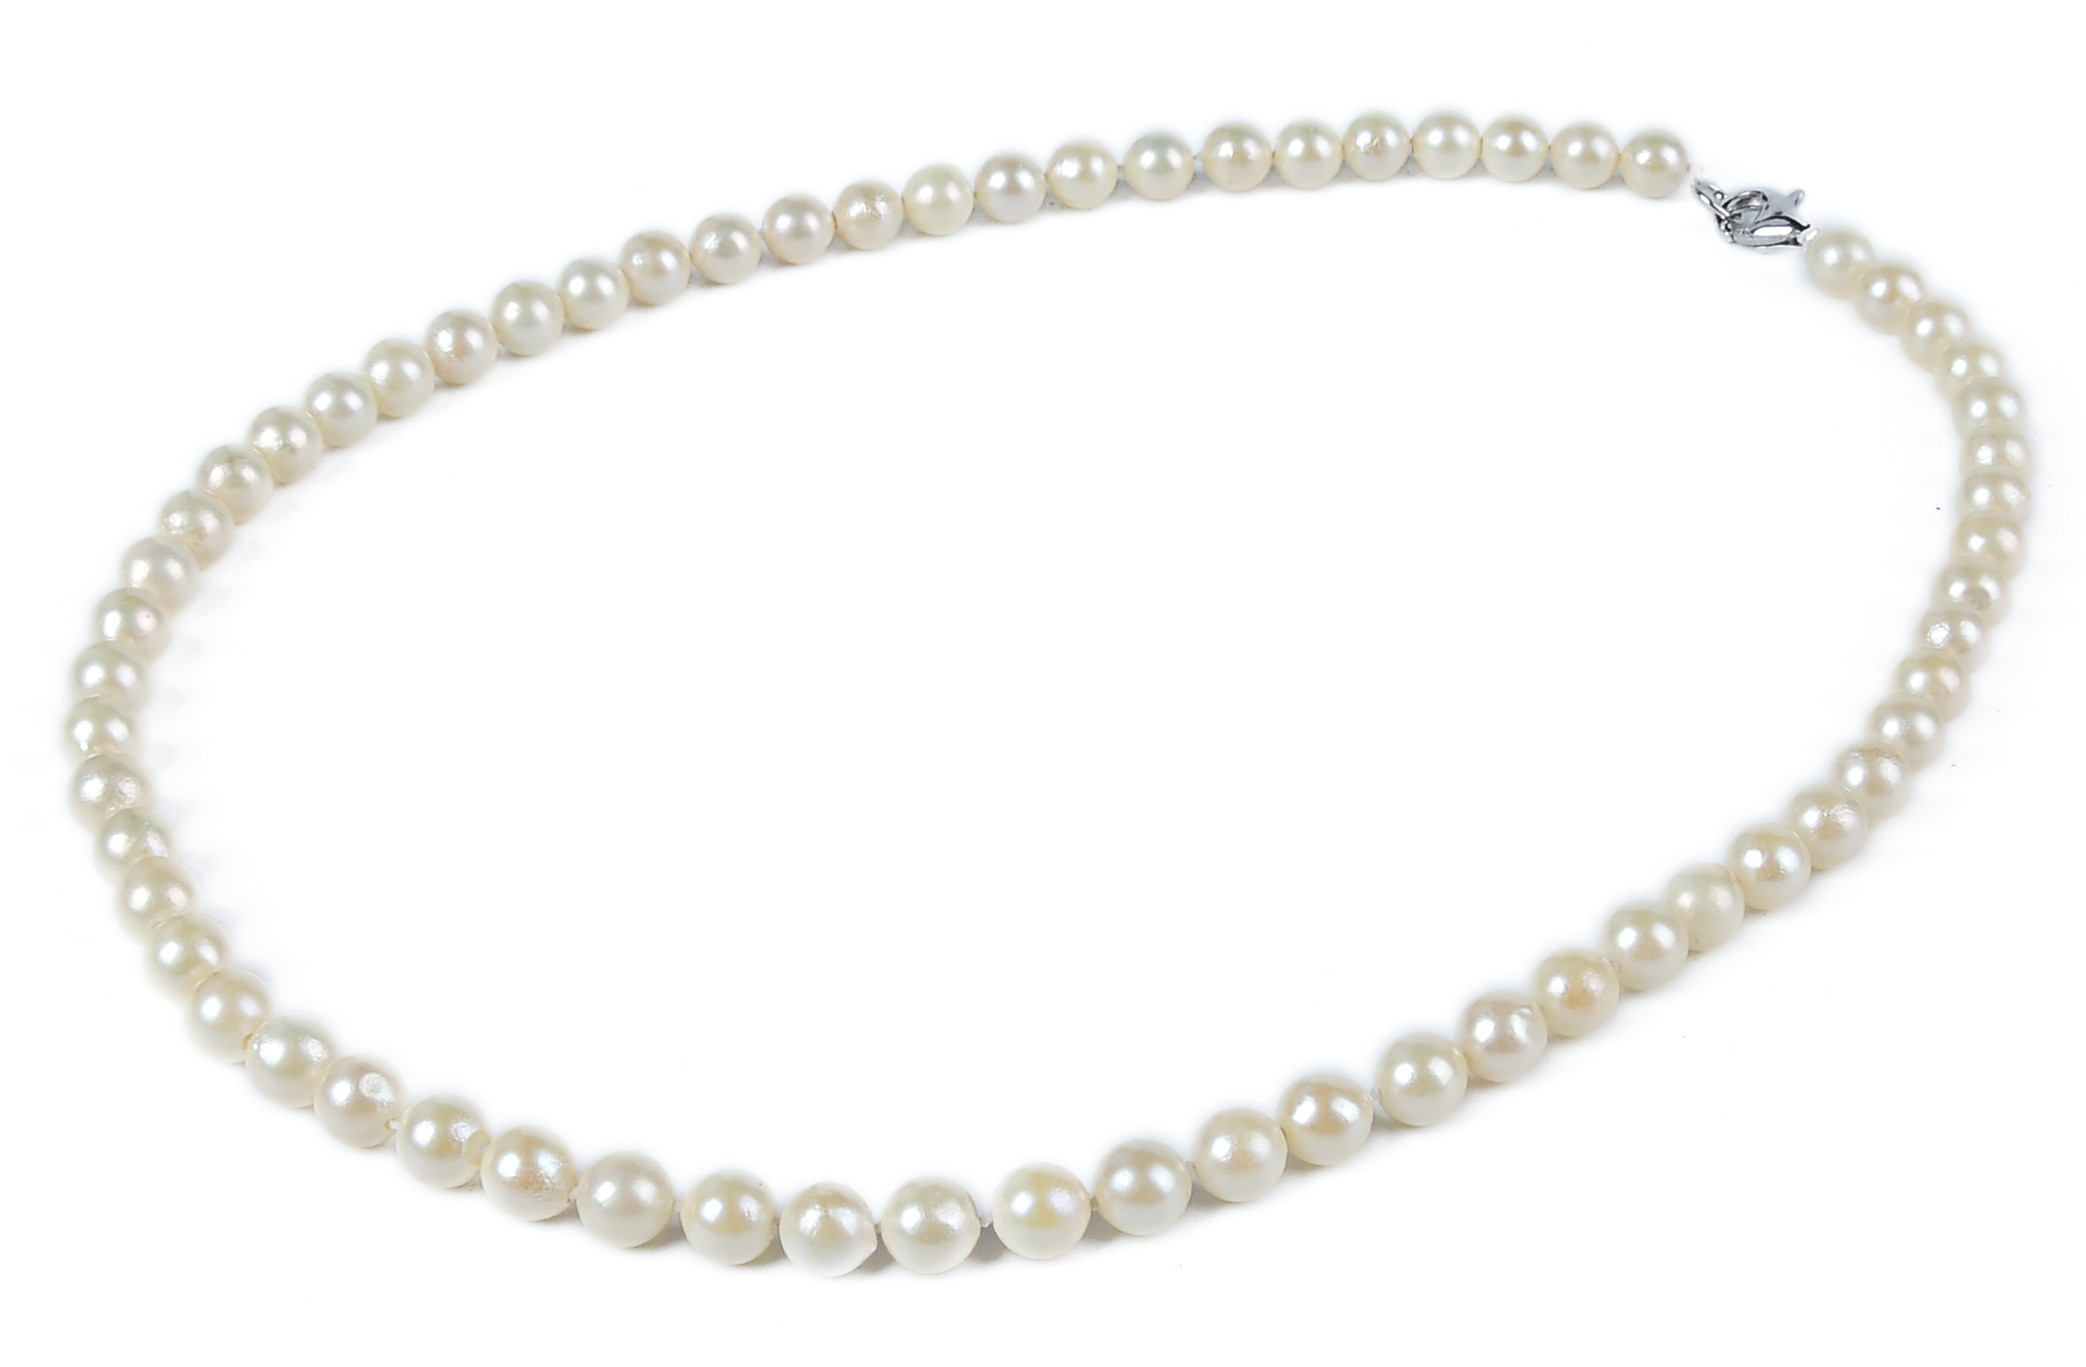 6.5mm AA+ Cream Akoya Cultured Pearl Strand Sku#: nk118